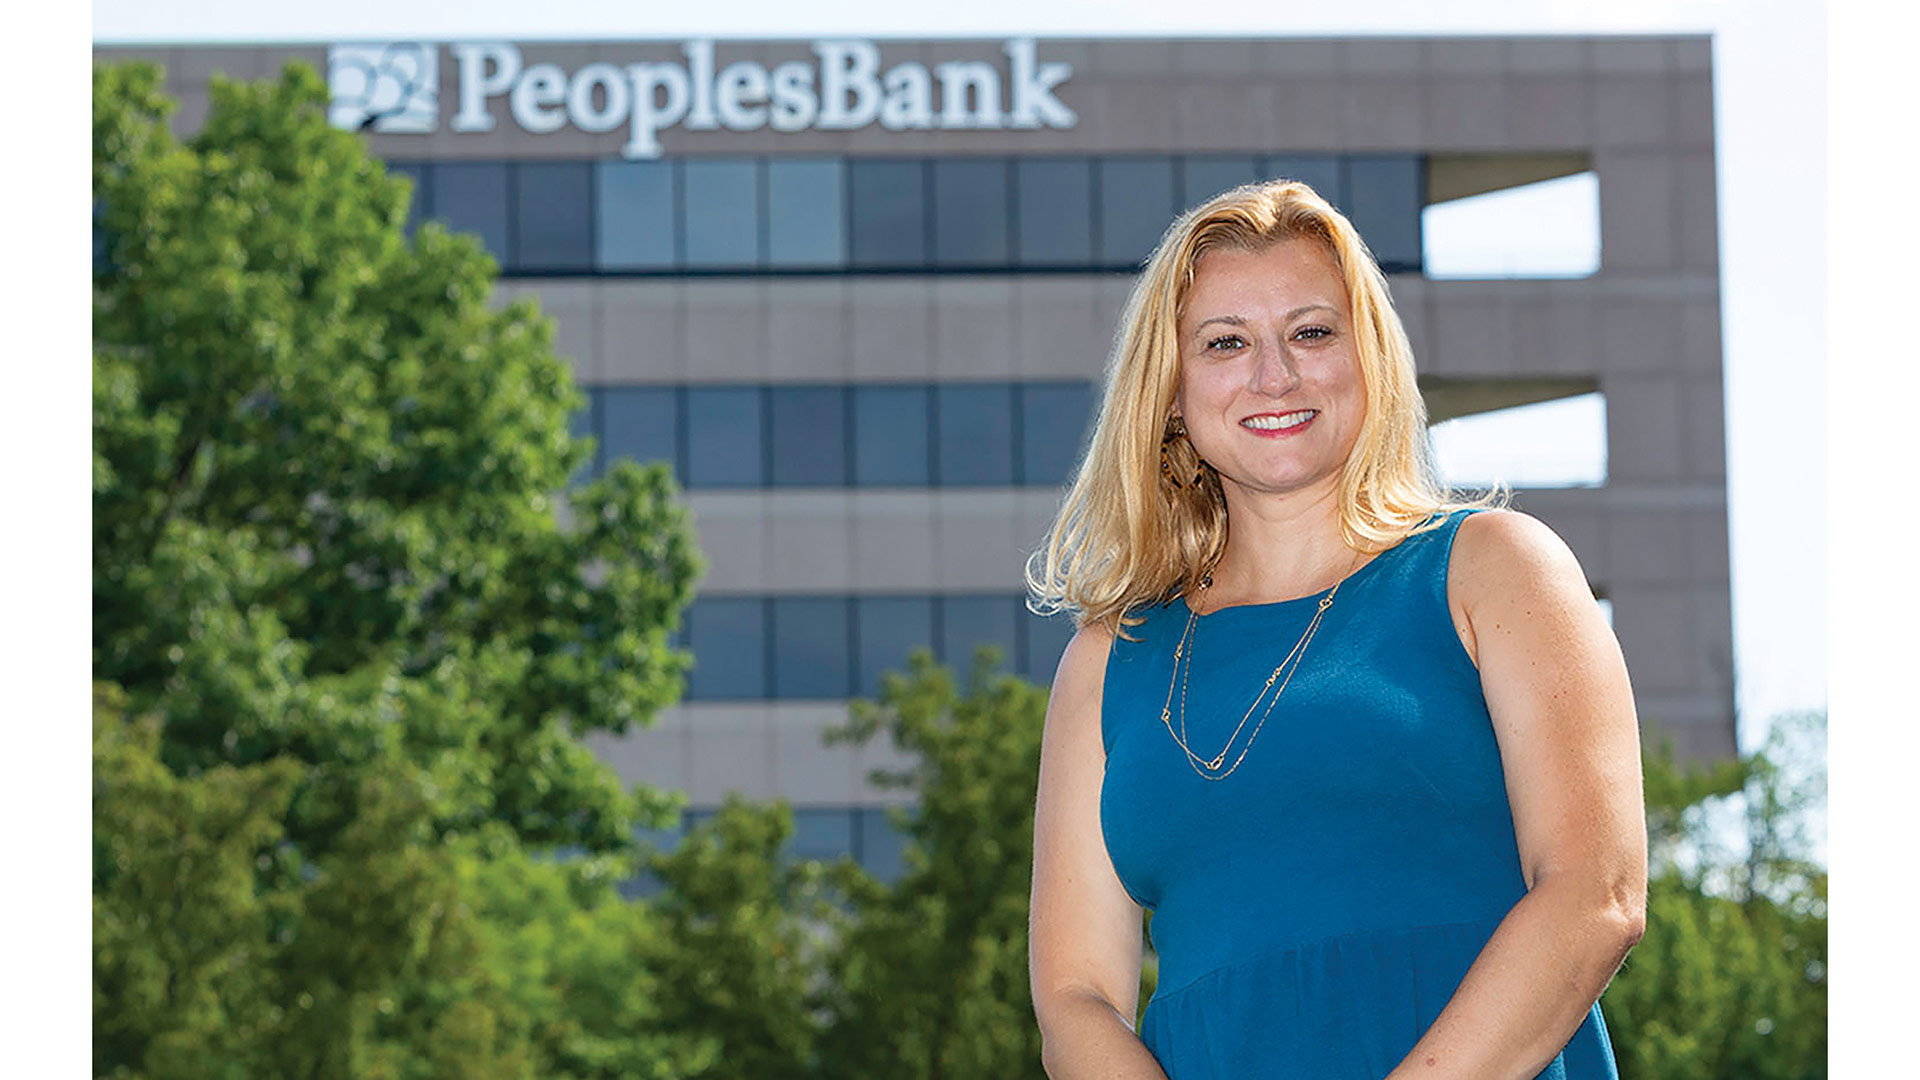 Amy Roberts says PeoplesBank